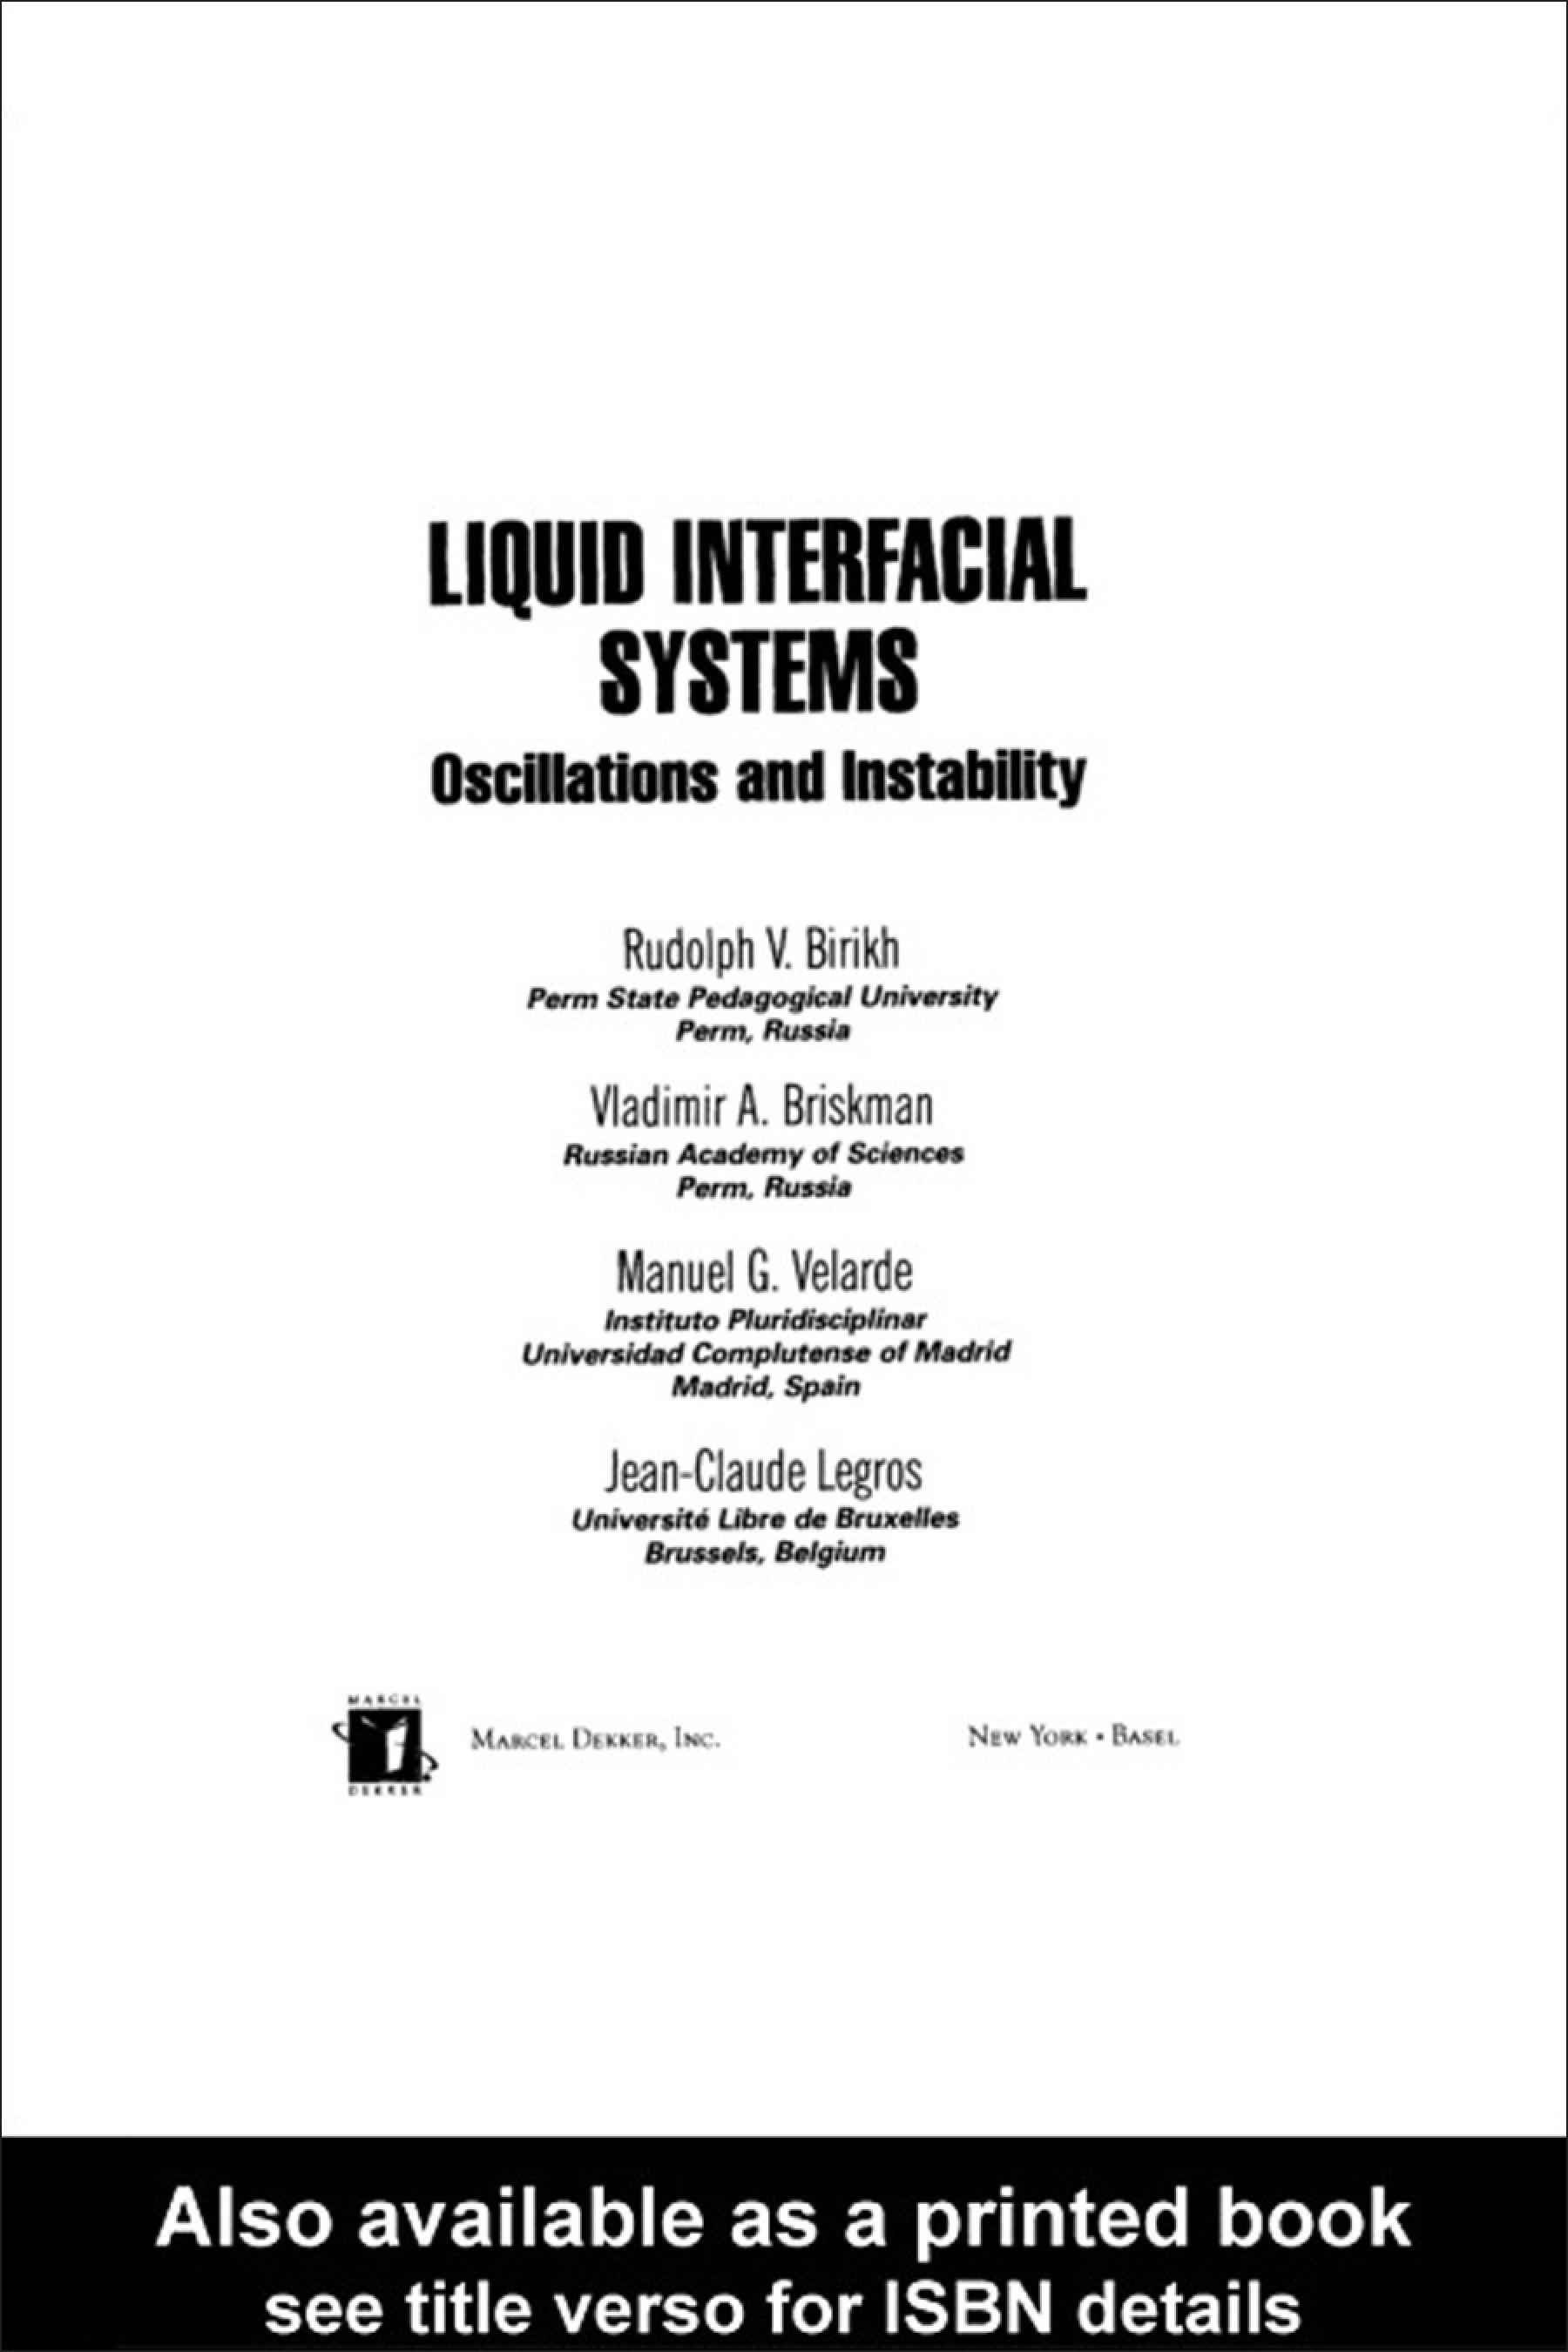 Liquid Interfacial Systems: Oscillations and Instability book cover